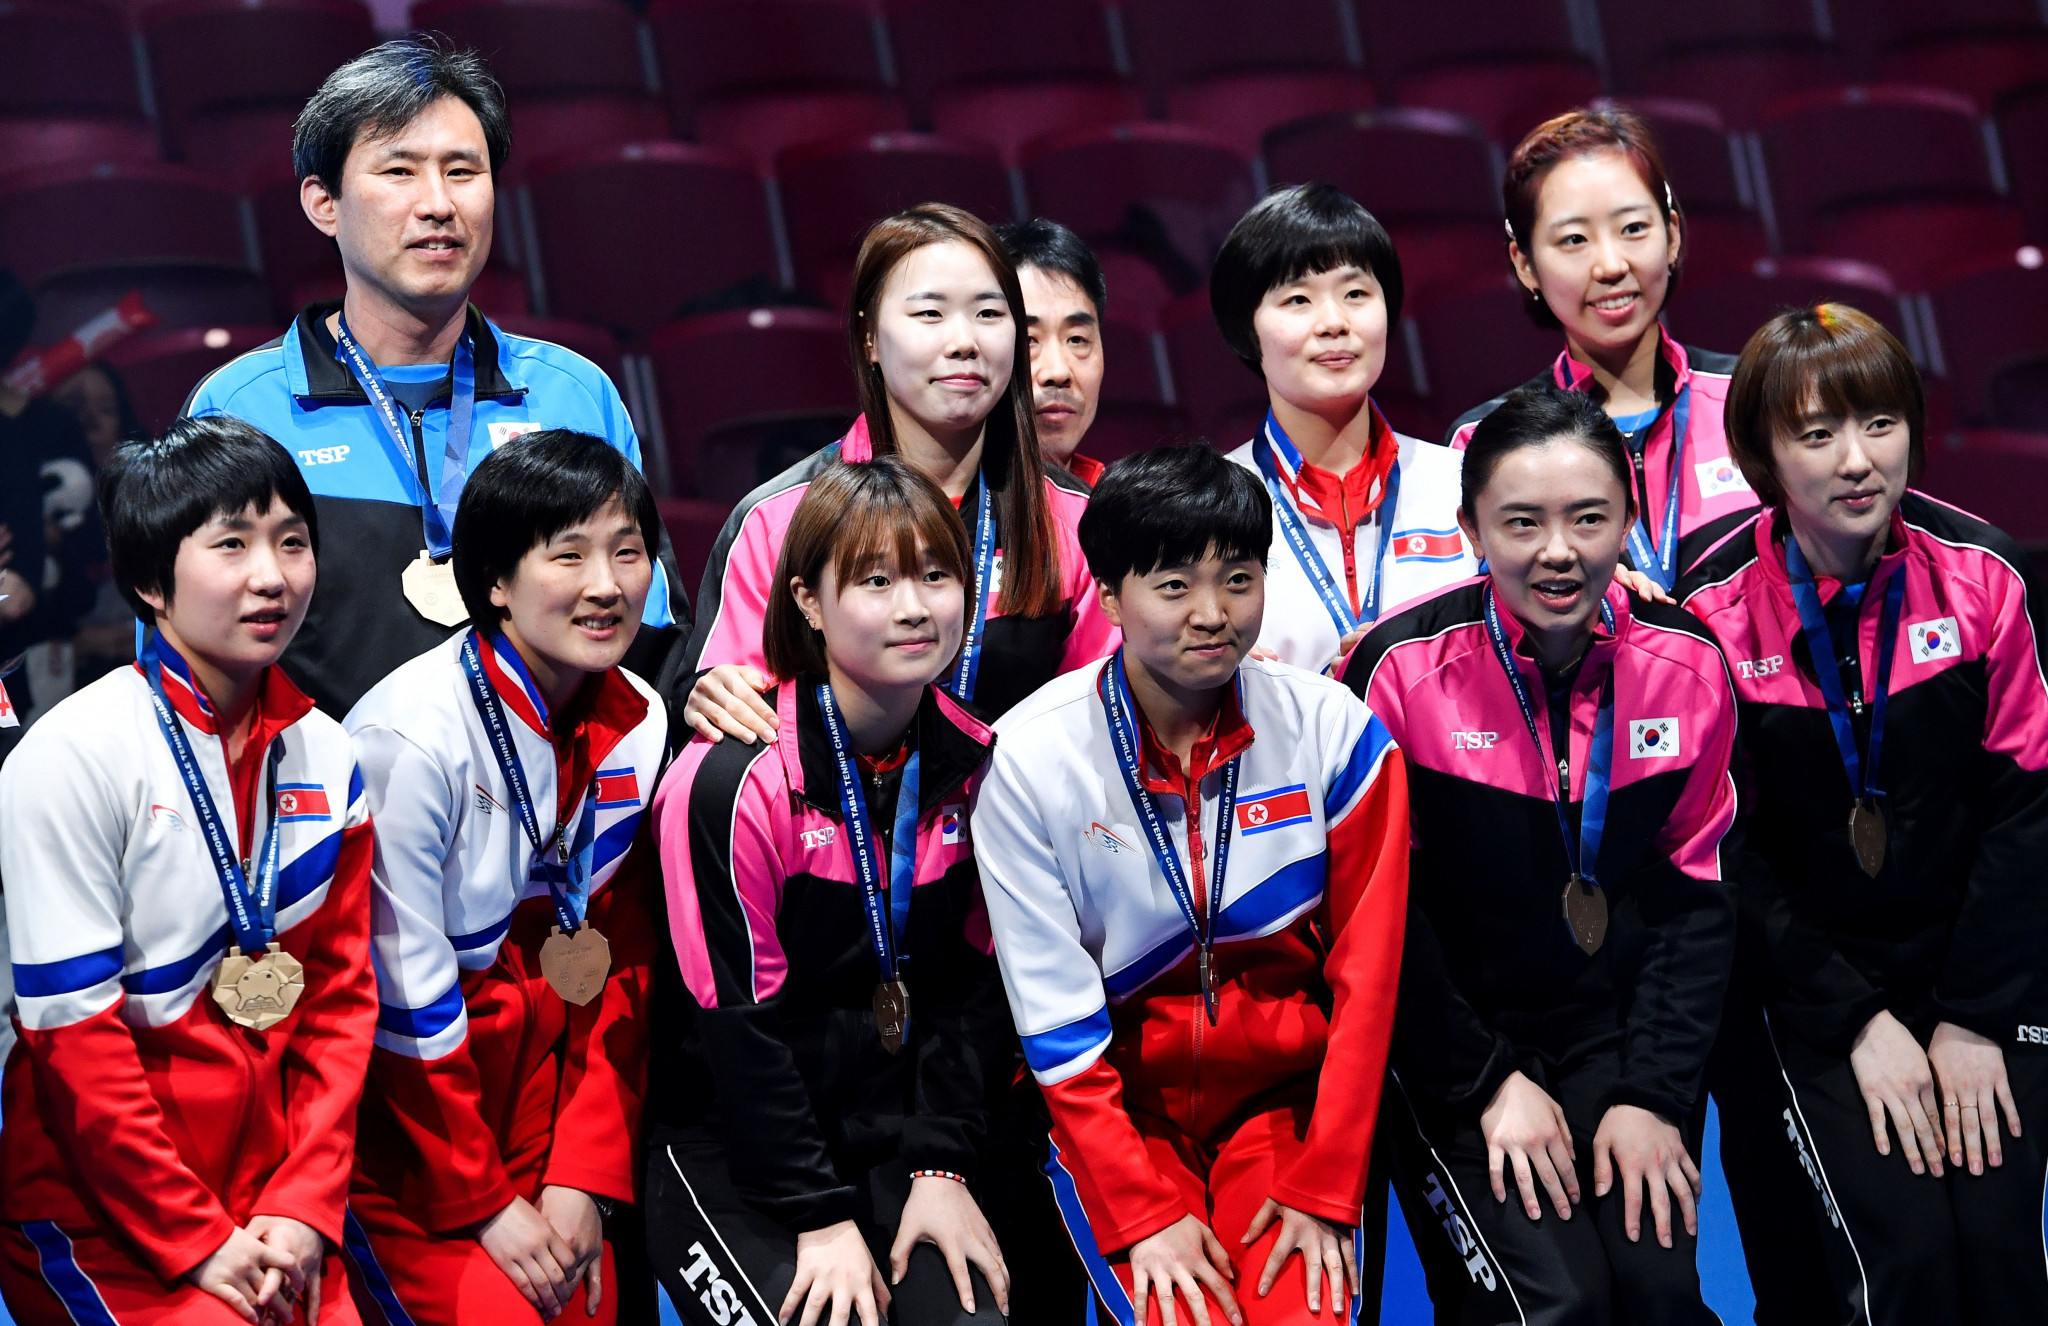 South Korean men's table tennis coach Kim Taek-soo expressed his hope that a unified Korean team will compete at this year's Asian Games in Jakarta and Palembang ©Getty Images